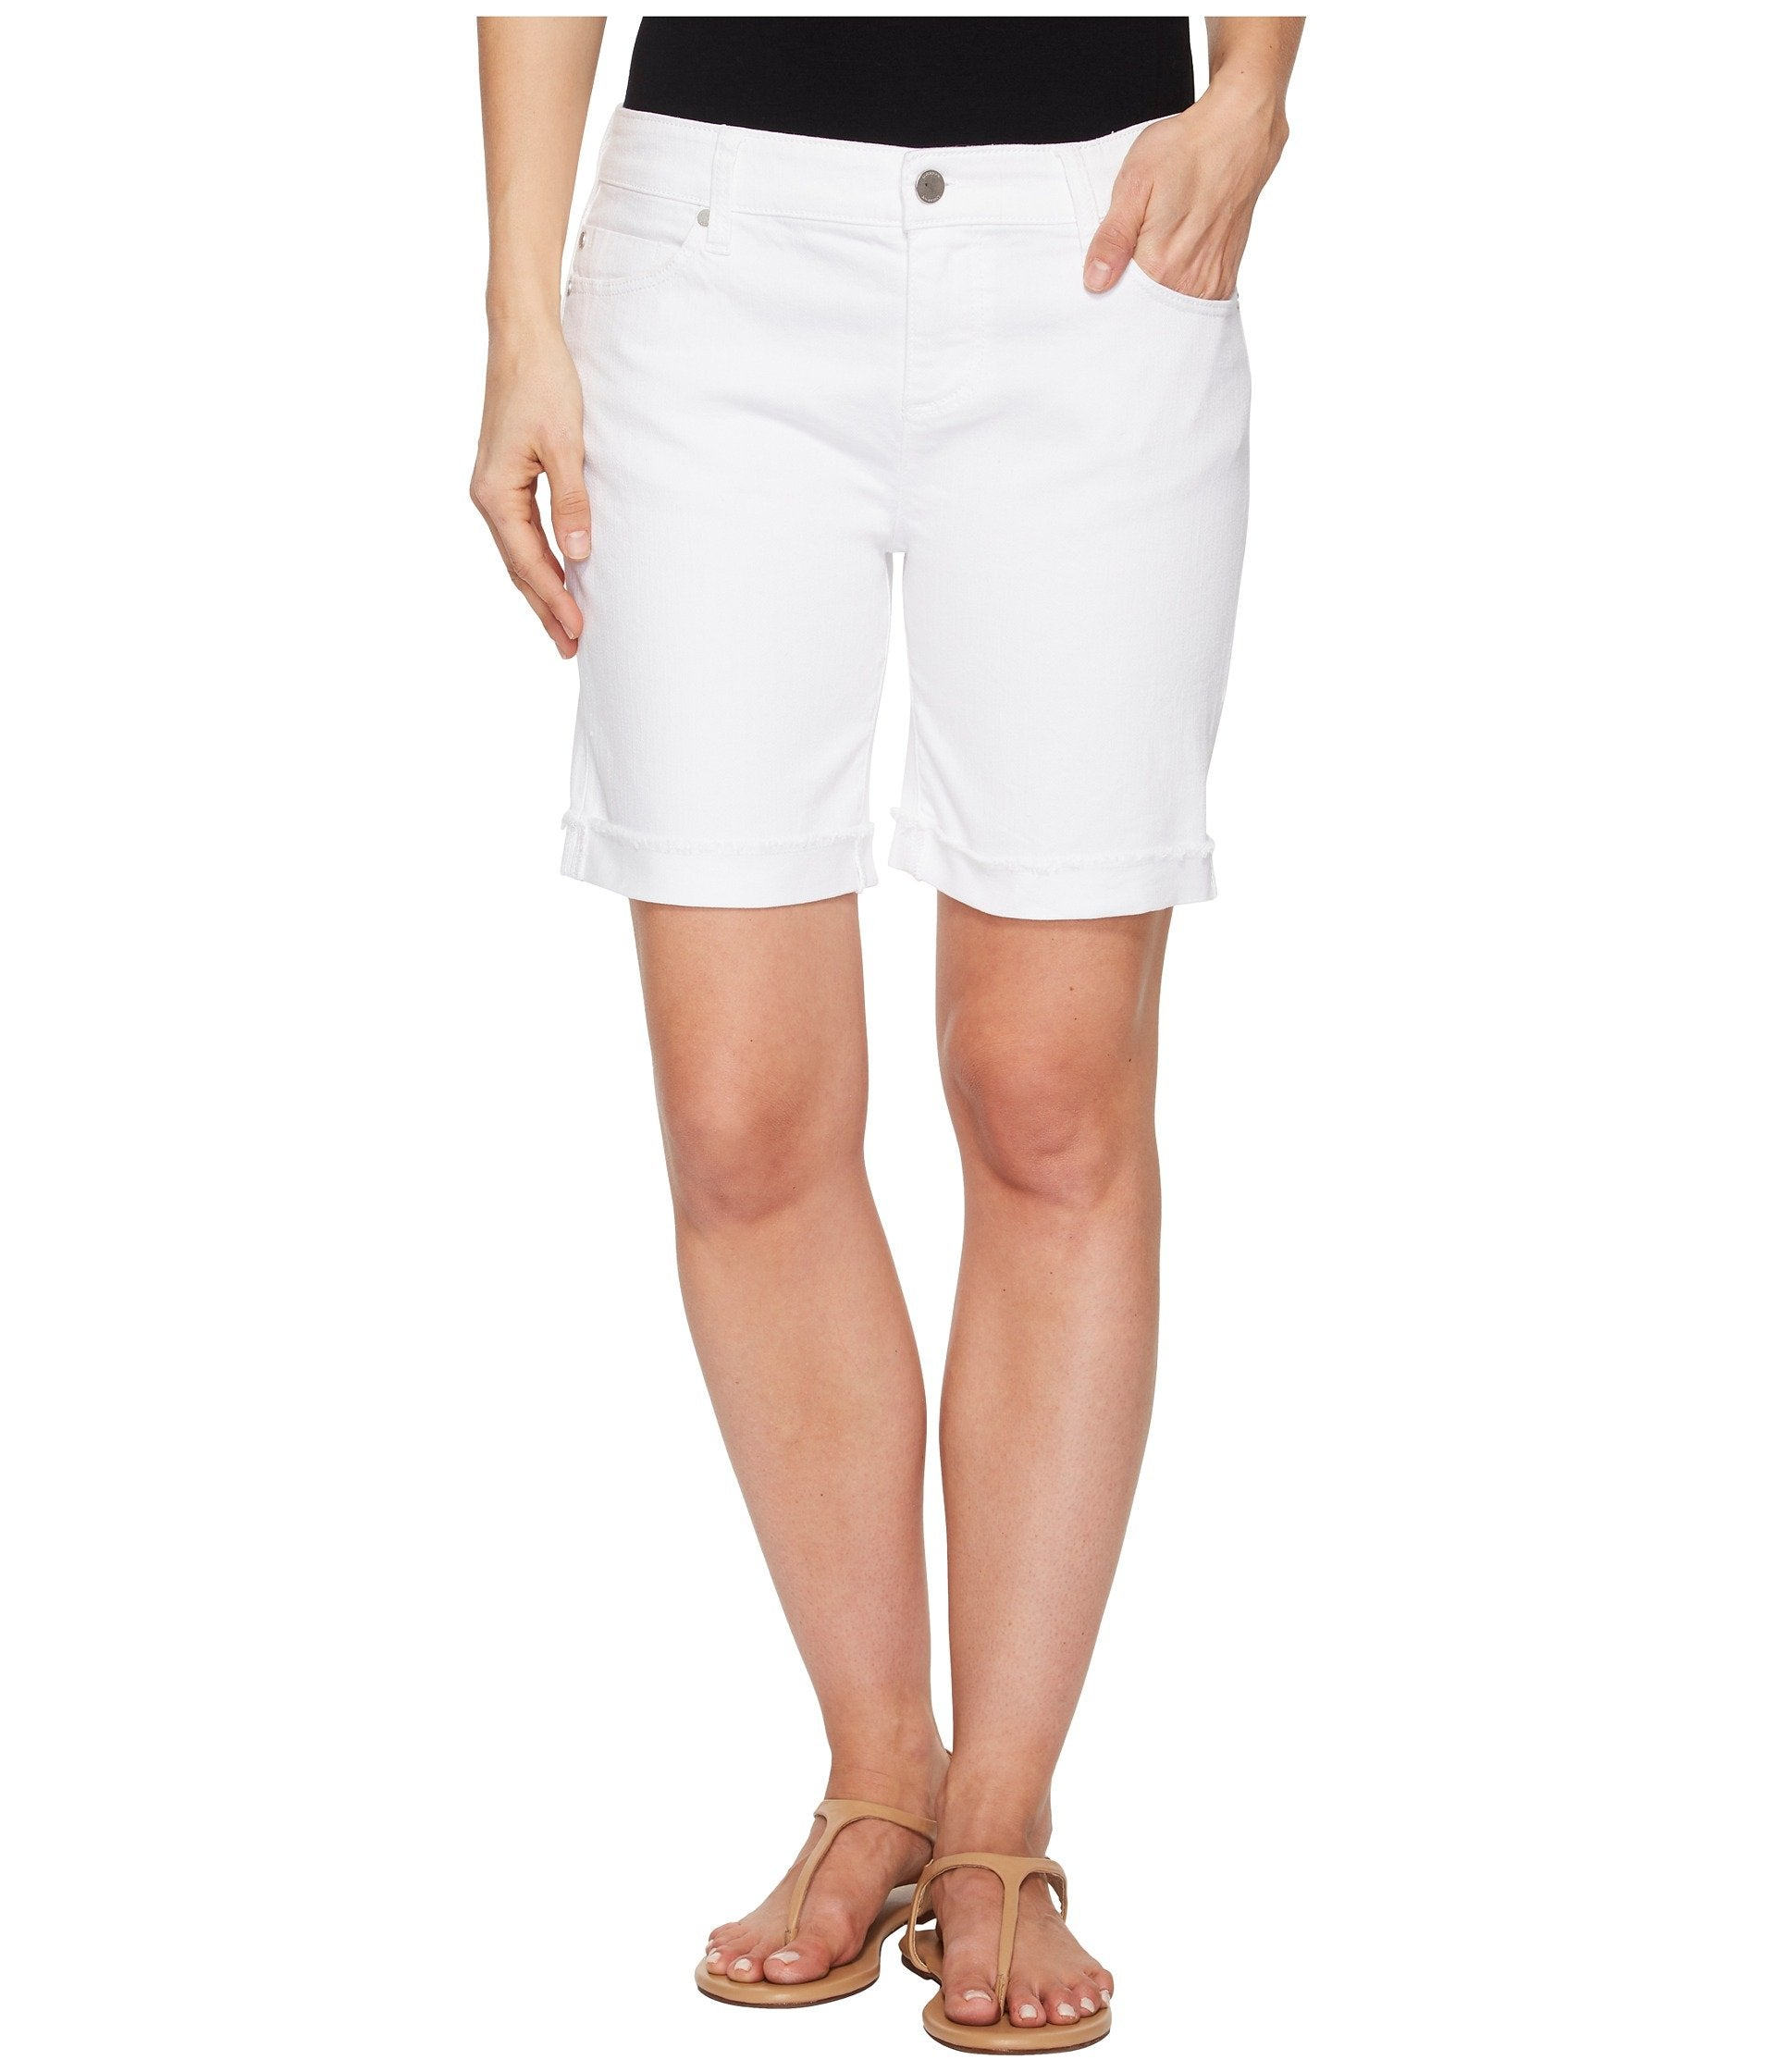 Cassey Shorts in Comfort Stretch Denim in Bright White